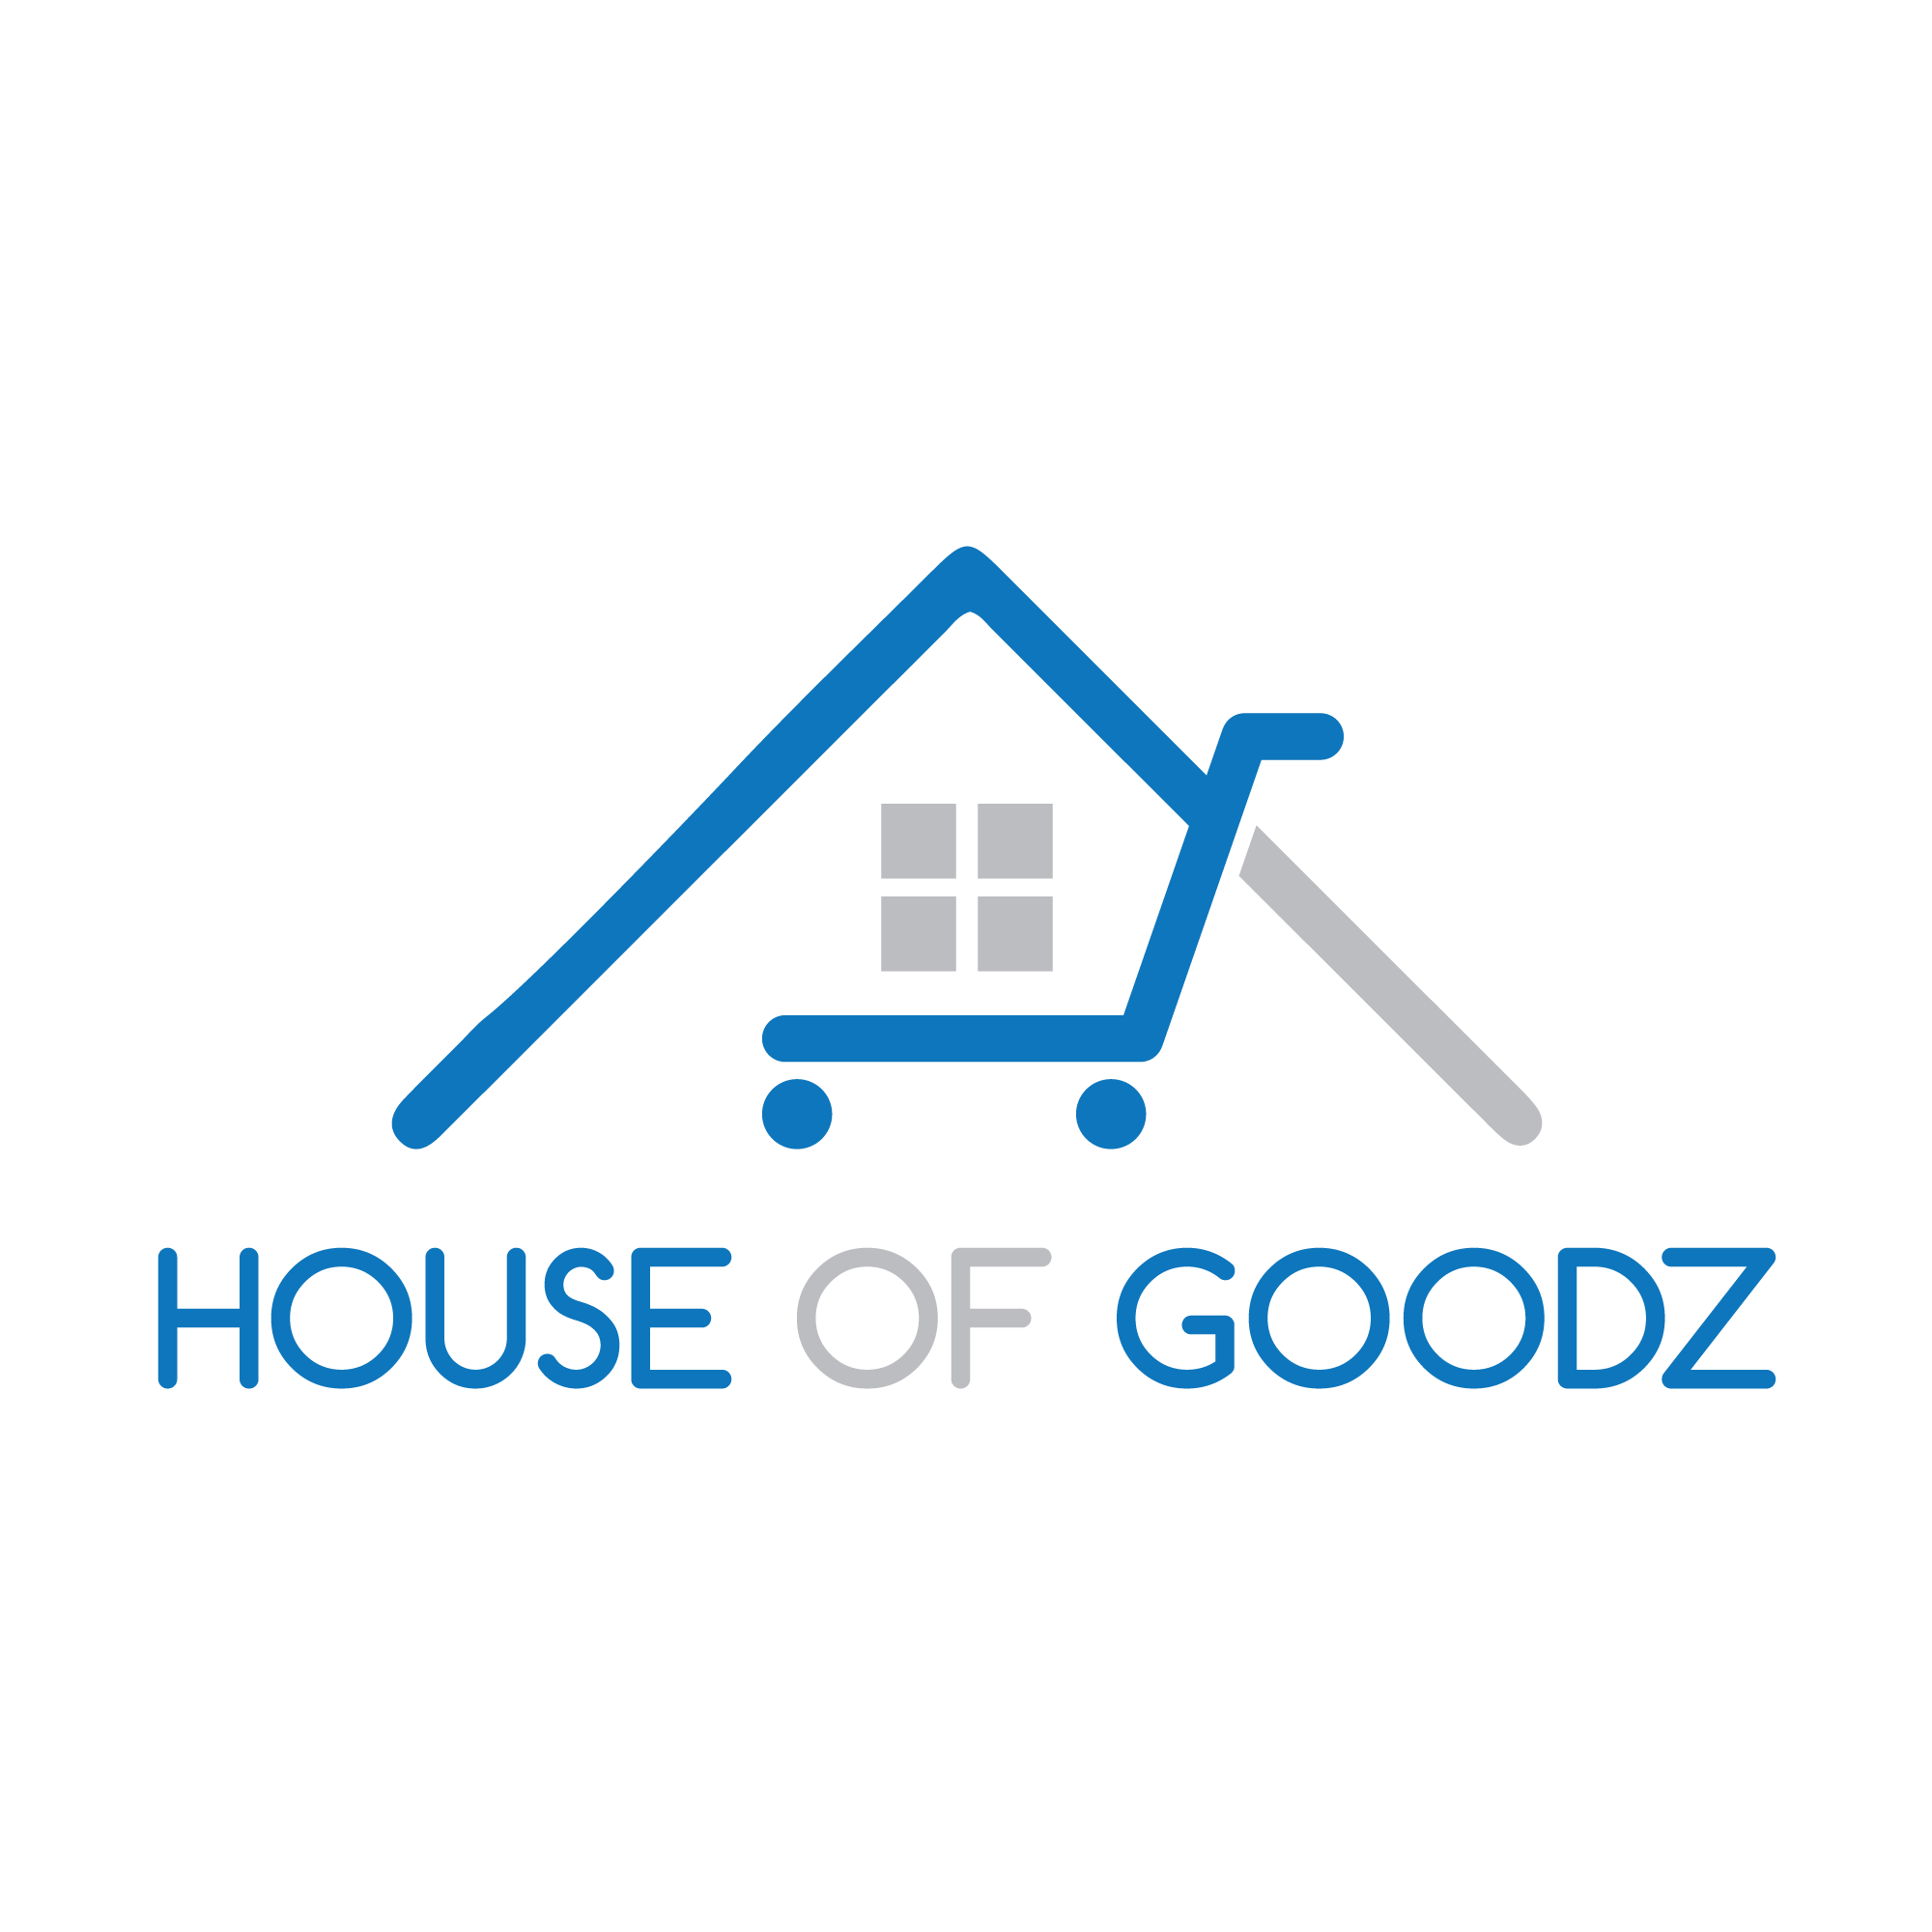 House of Goodz